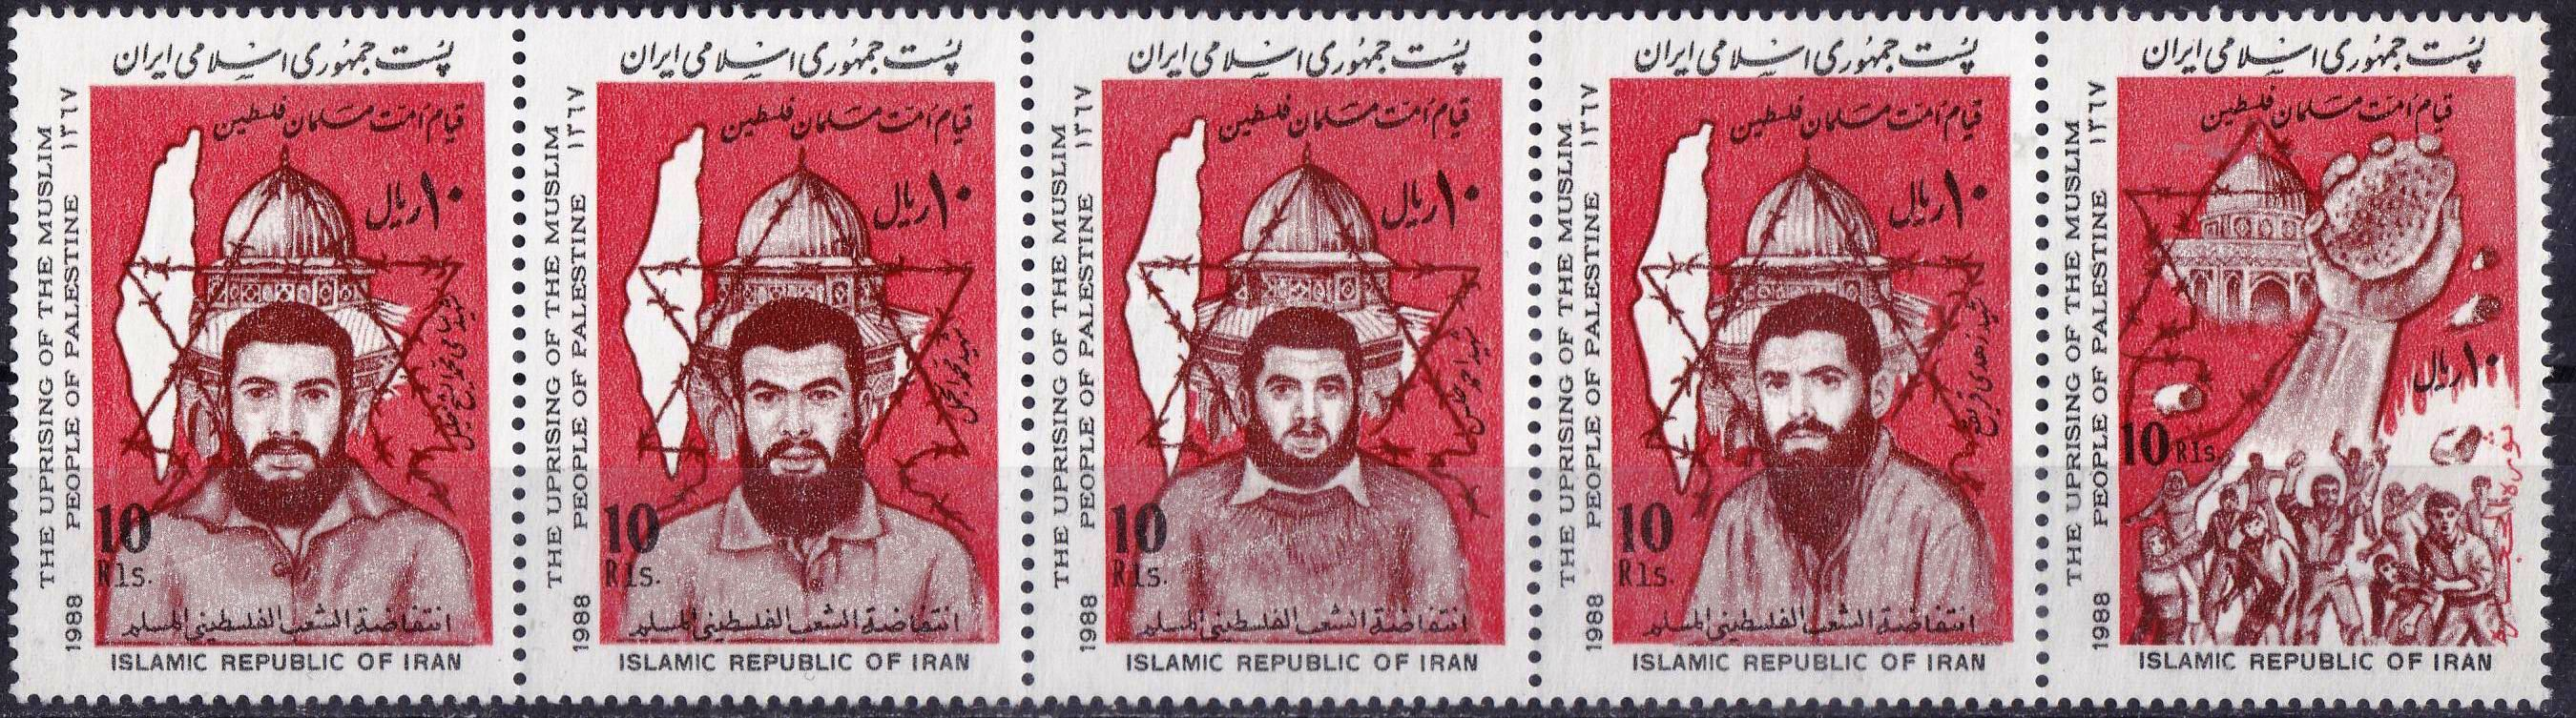 Iran 1988 Stamps Uprising Of Palestine People Dome Of Rock